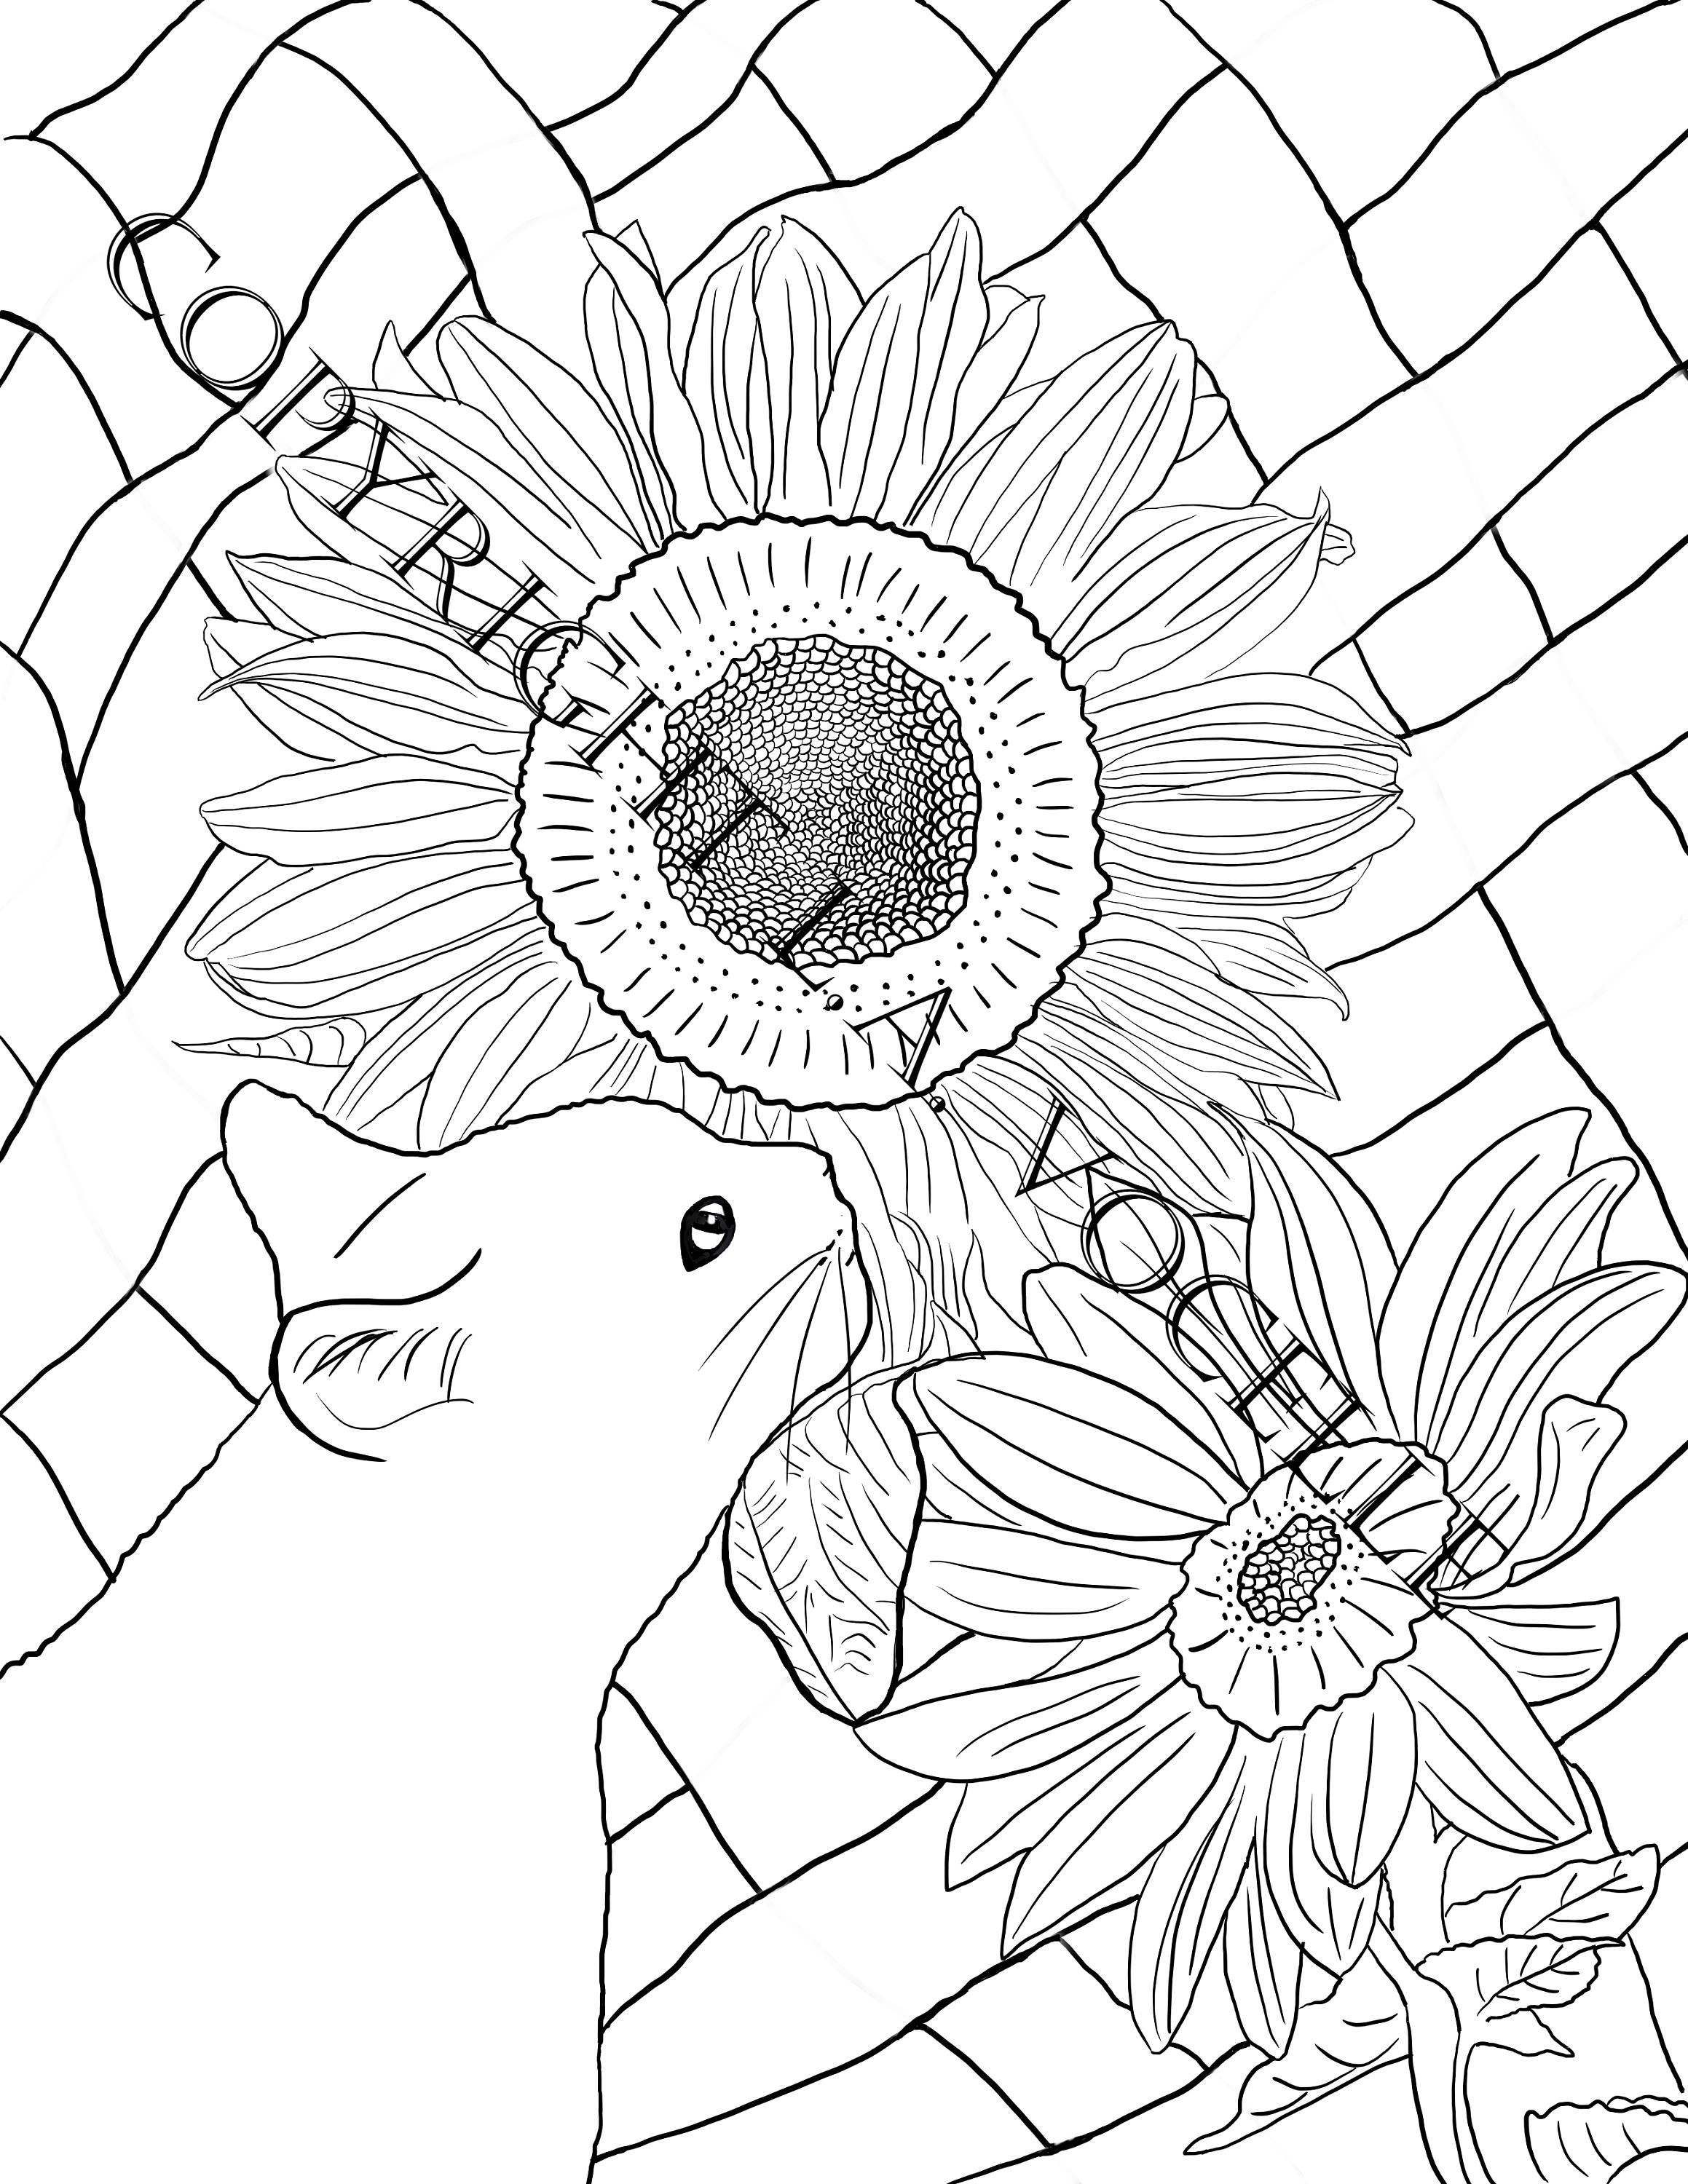 Coloring Pages Books For Adults Cat Kitty Digital Download